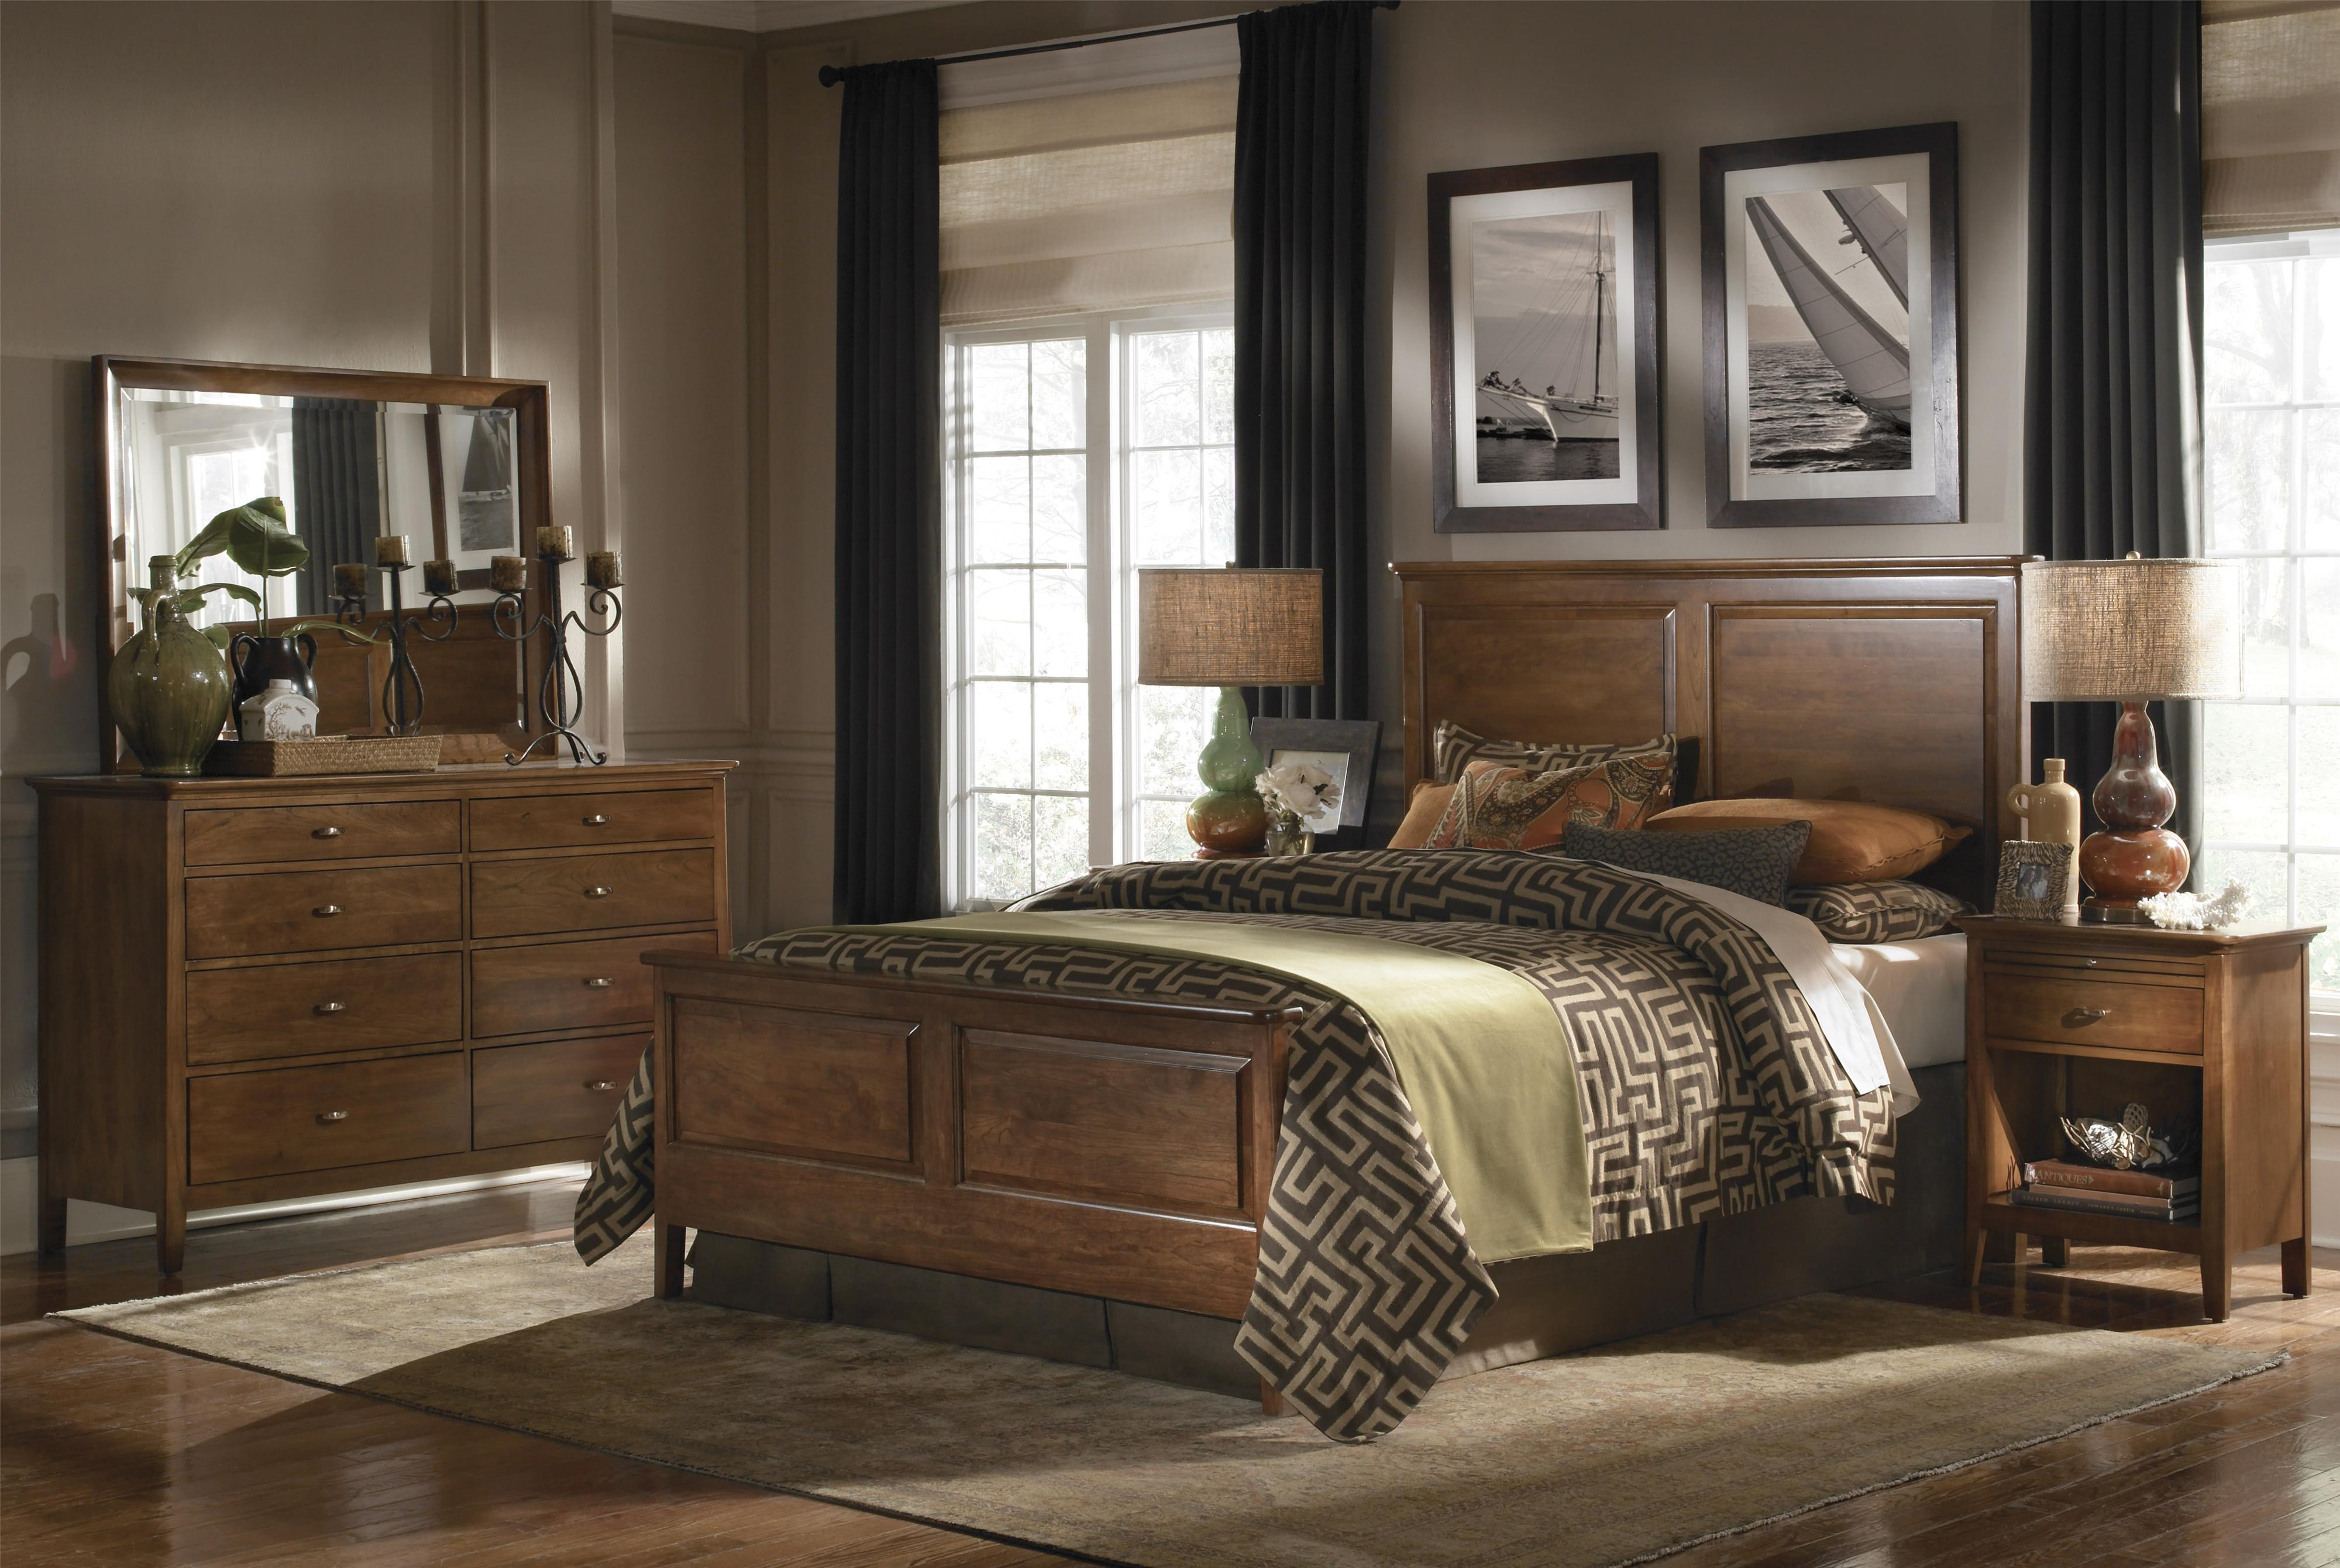 Cherry Park King Bedroom Group by Kincaid Furniture at Johnny Janosik